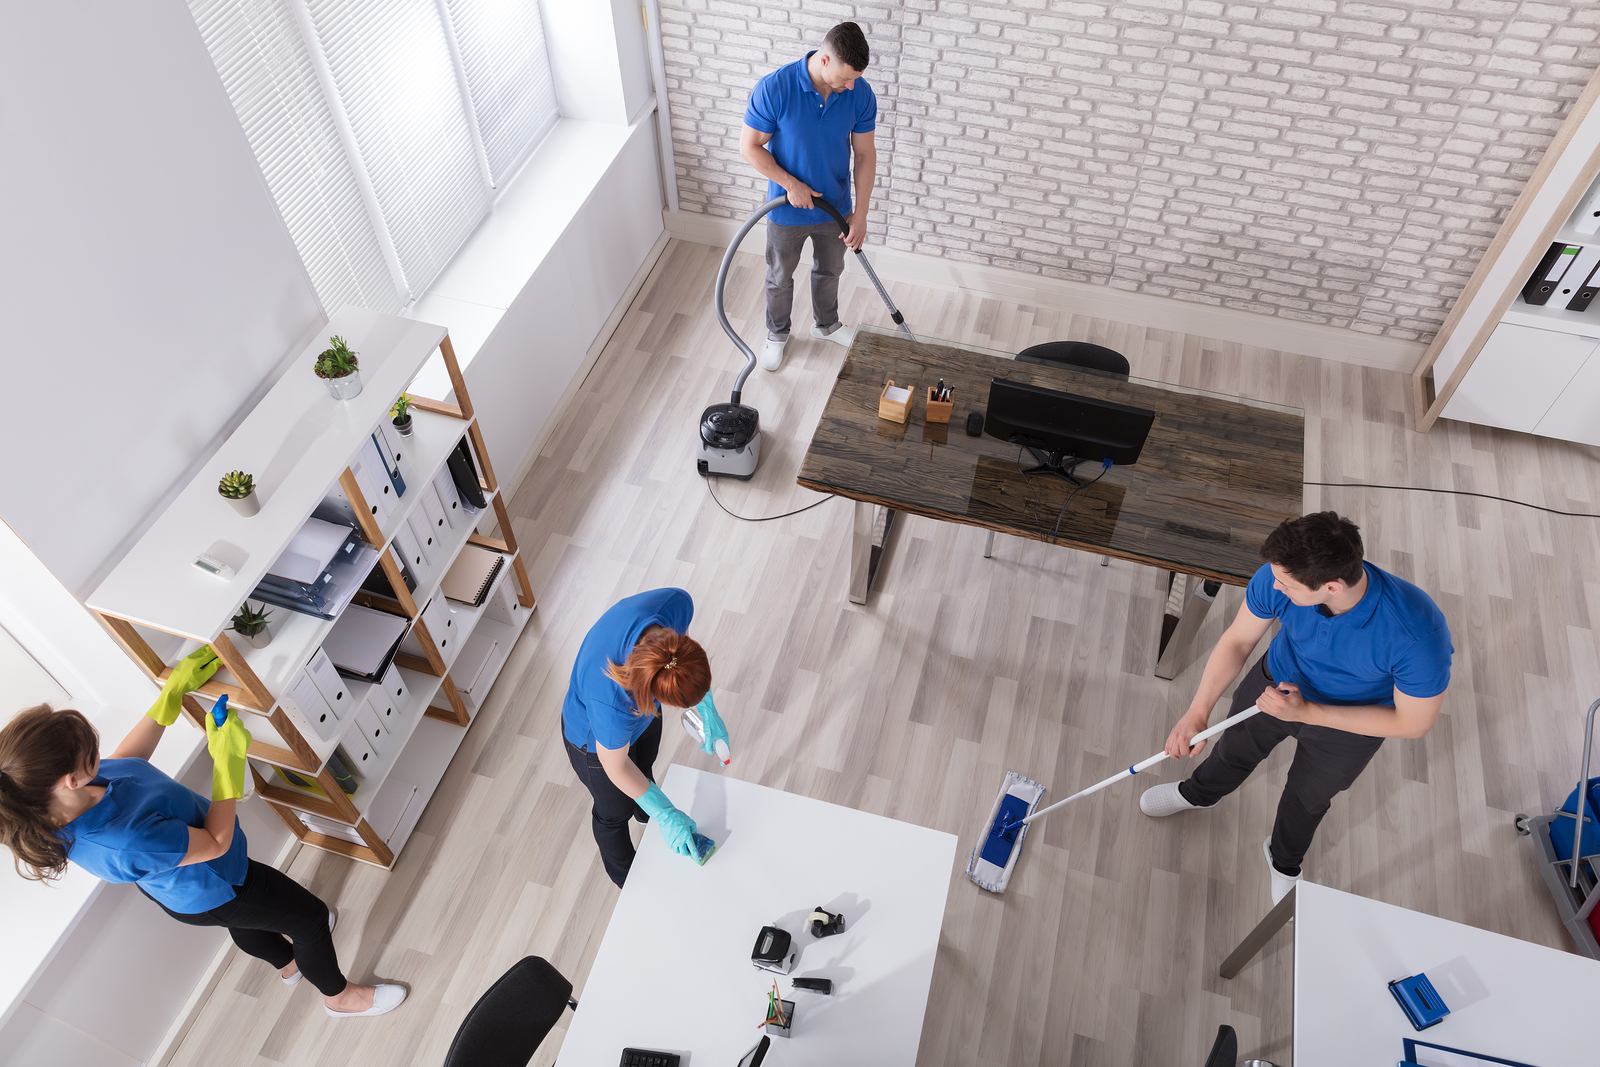 Residential House Cleaning Services  The Maids